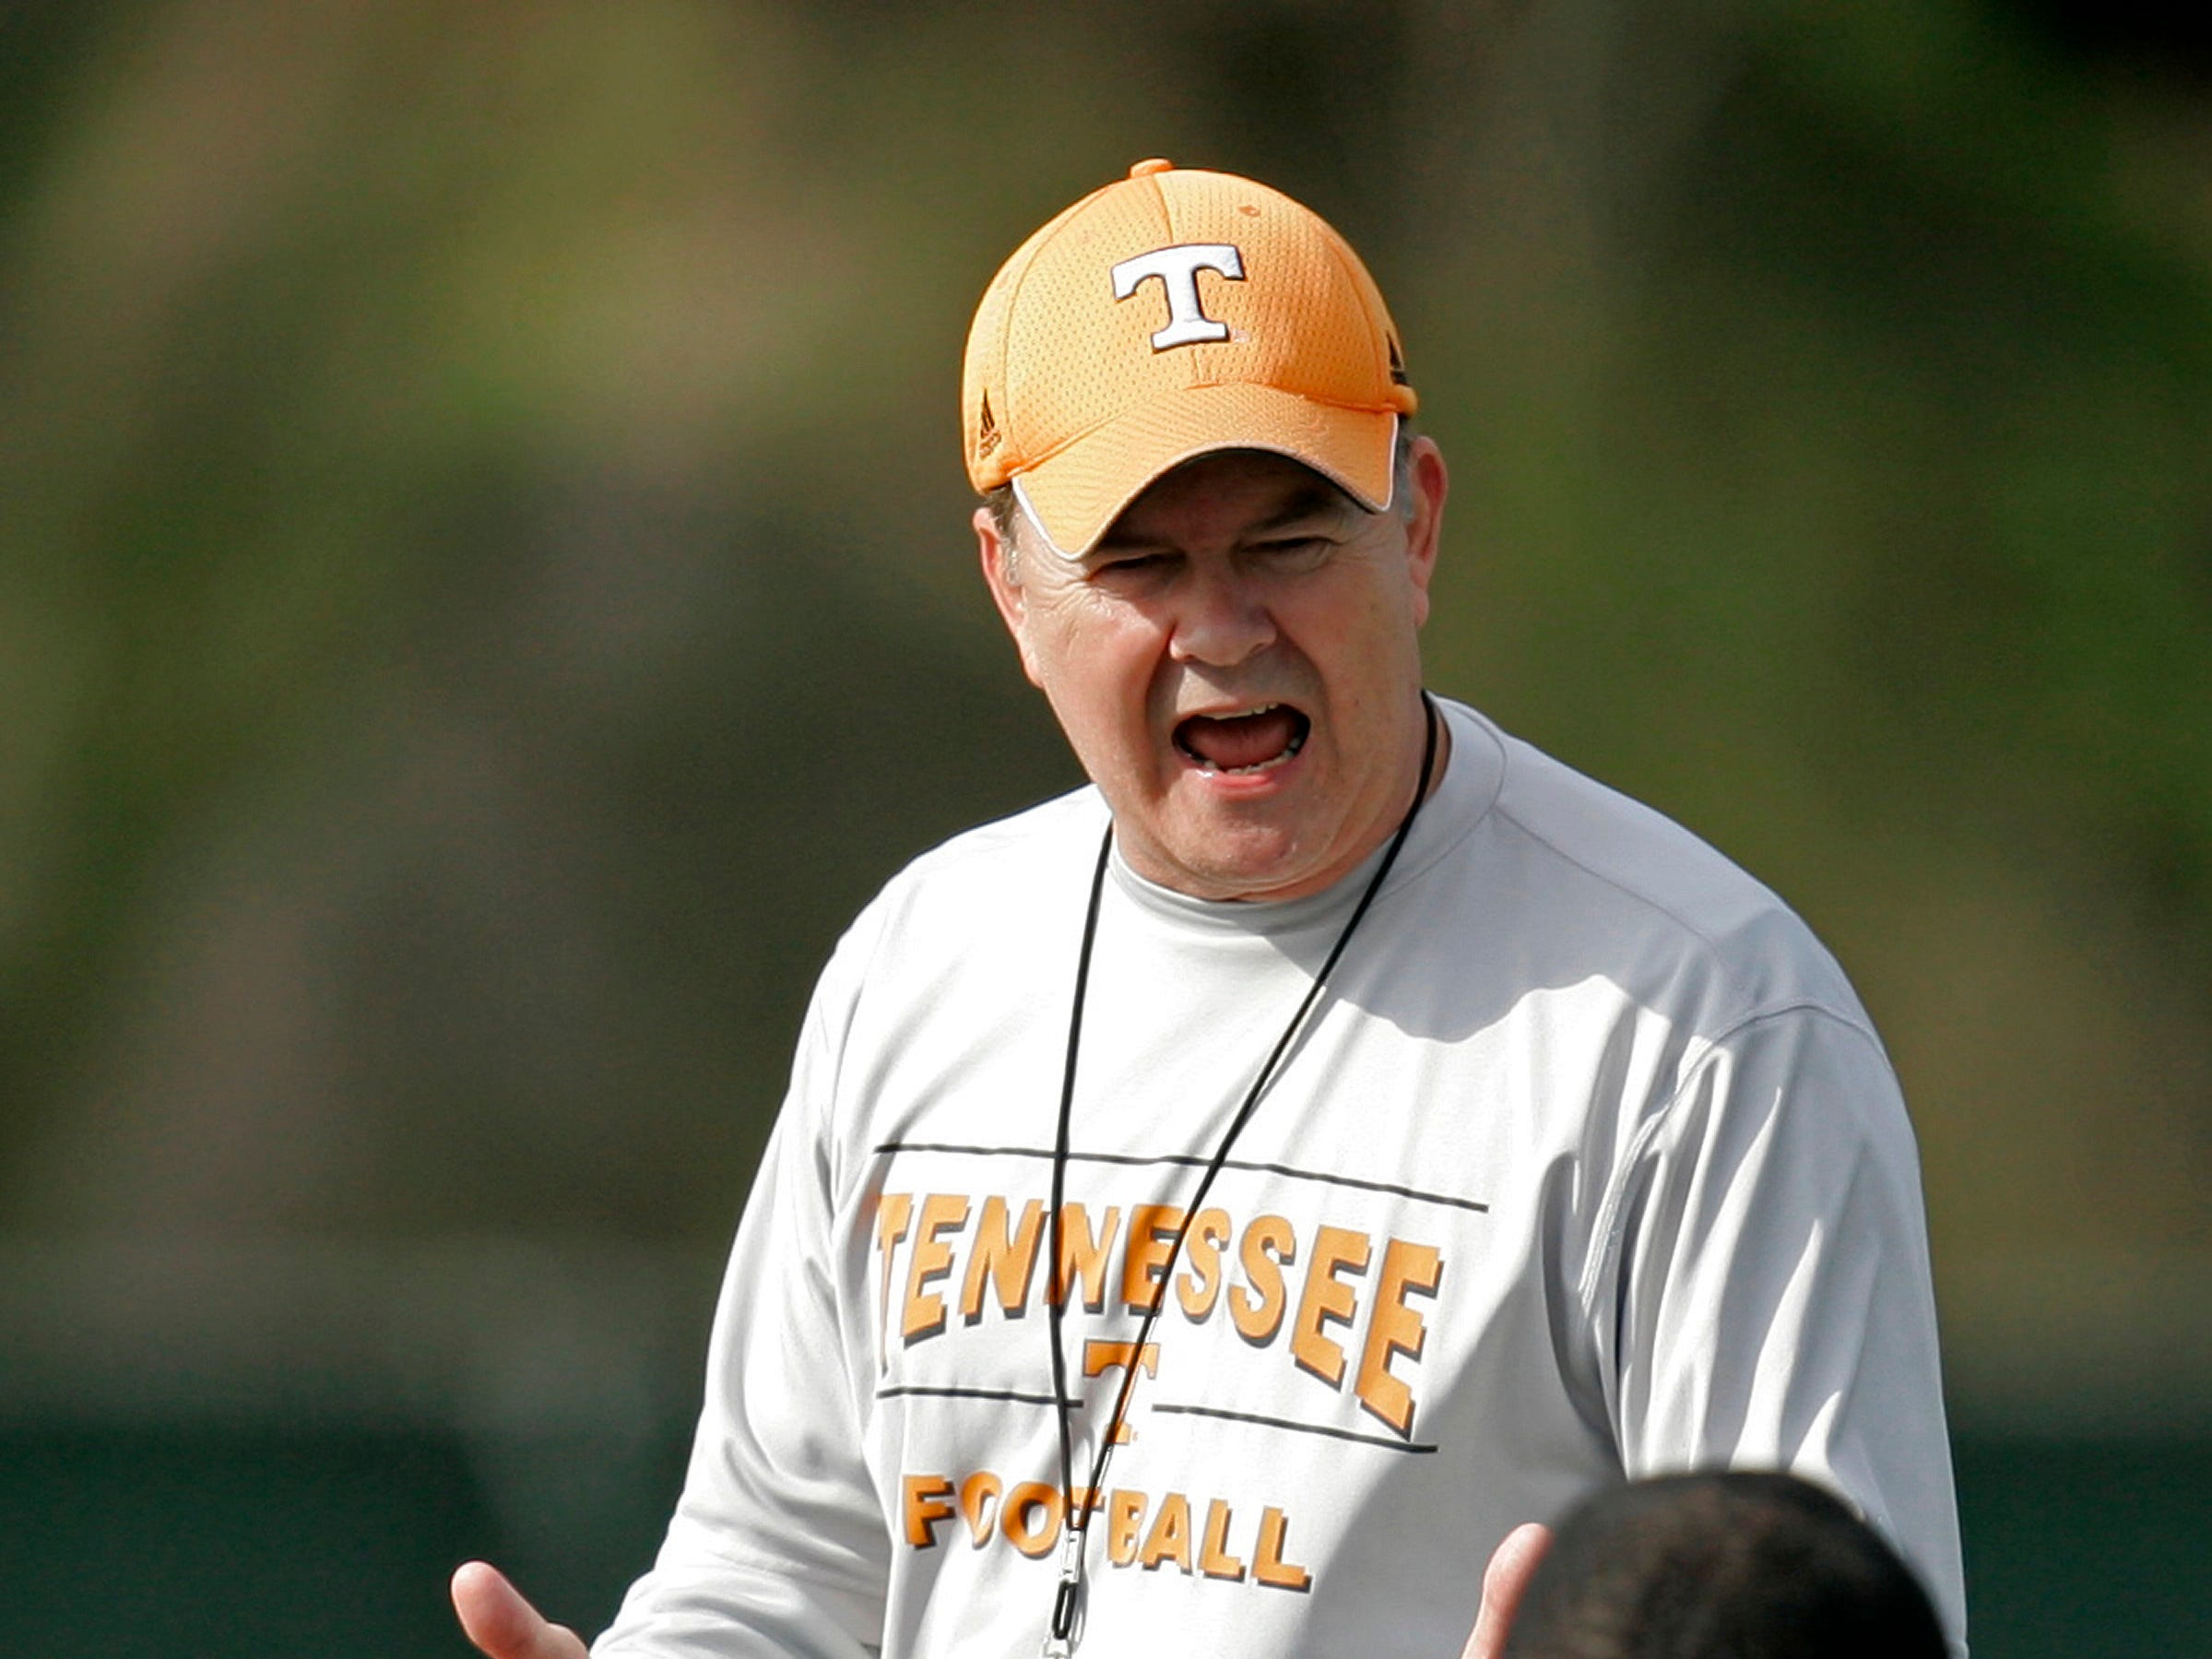 Tennessee offensive coordinator David Cutcliffe addresses his team prior to their college football practice Thursday, Dec. 28, 2006, in Tampa, Fla., as they prepare to play Penn State in the Outback Bowl on New Year's Day.